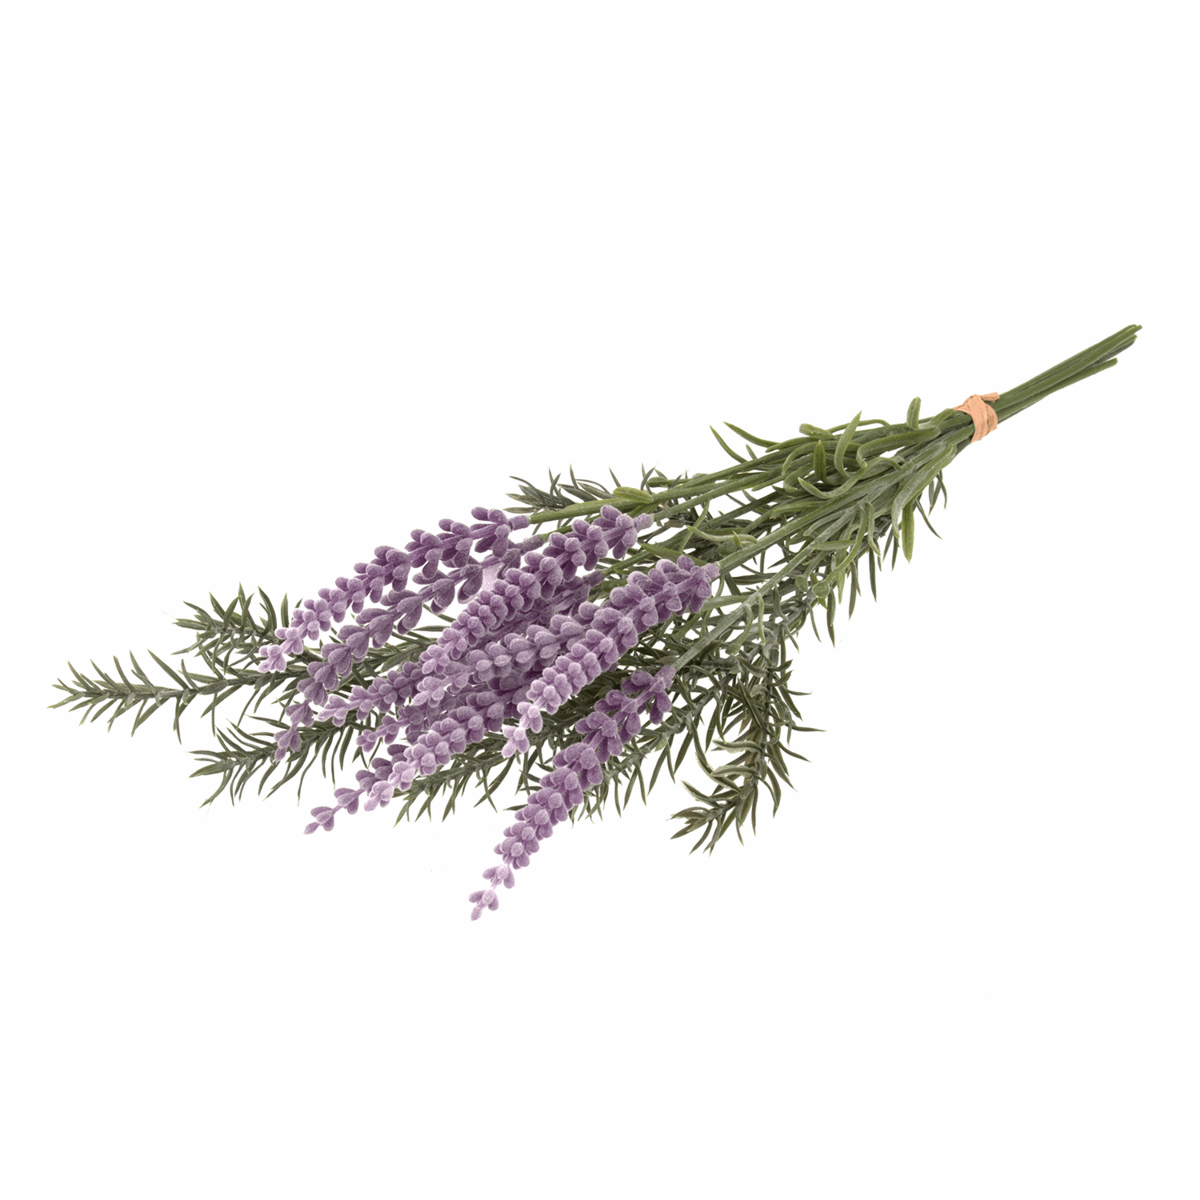 Picture of Flowers: Lavender Bunch x 6 Stems: 35cm